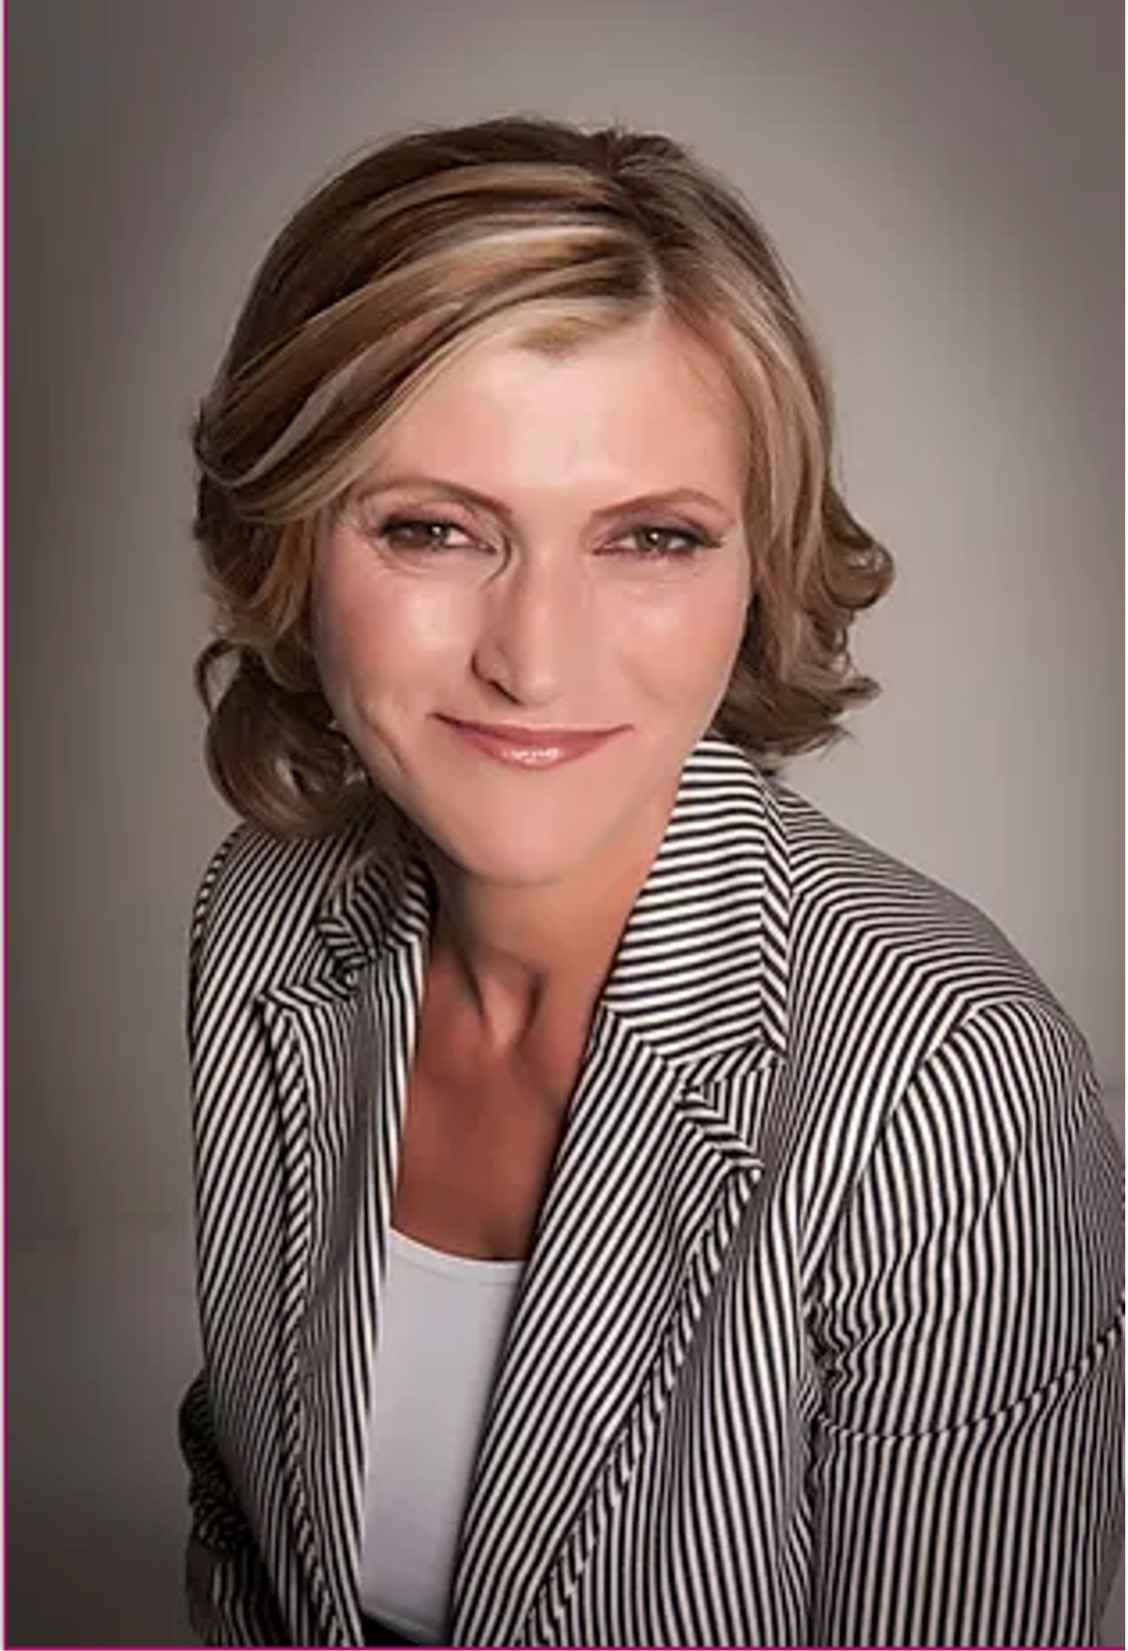 Anne Costello is an International Mindfulness and Stress Reduction professional.